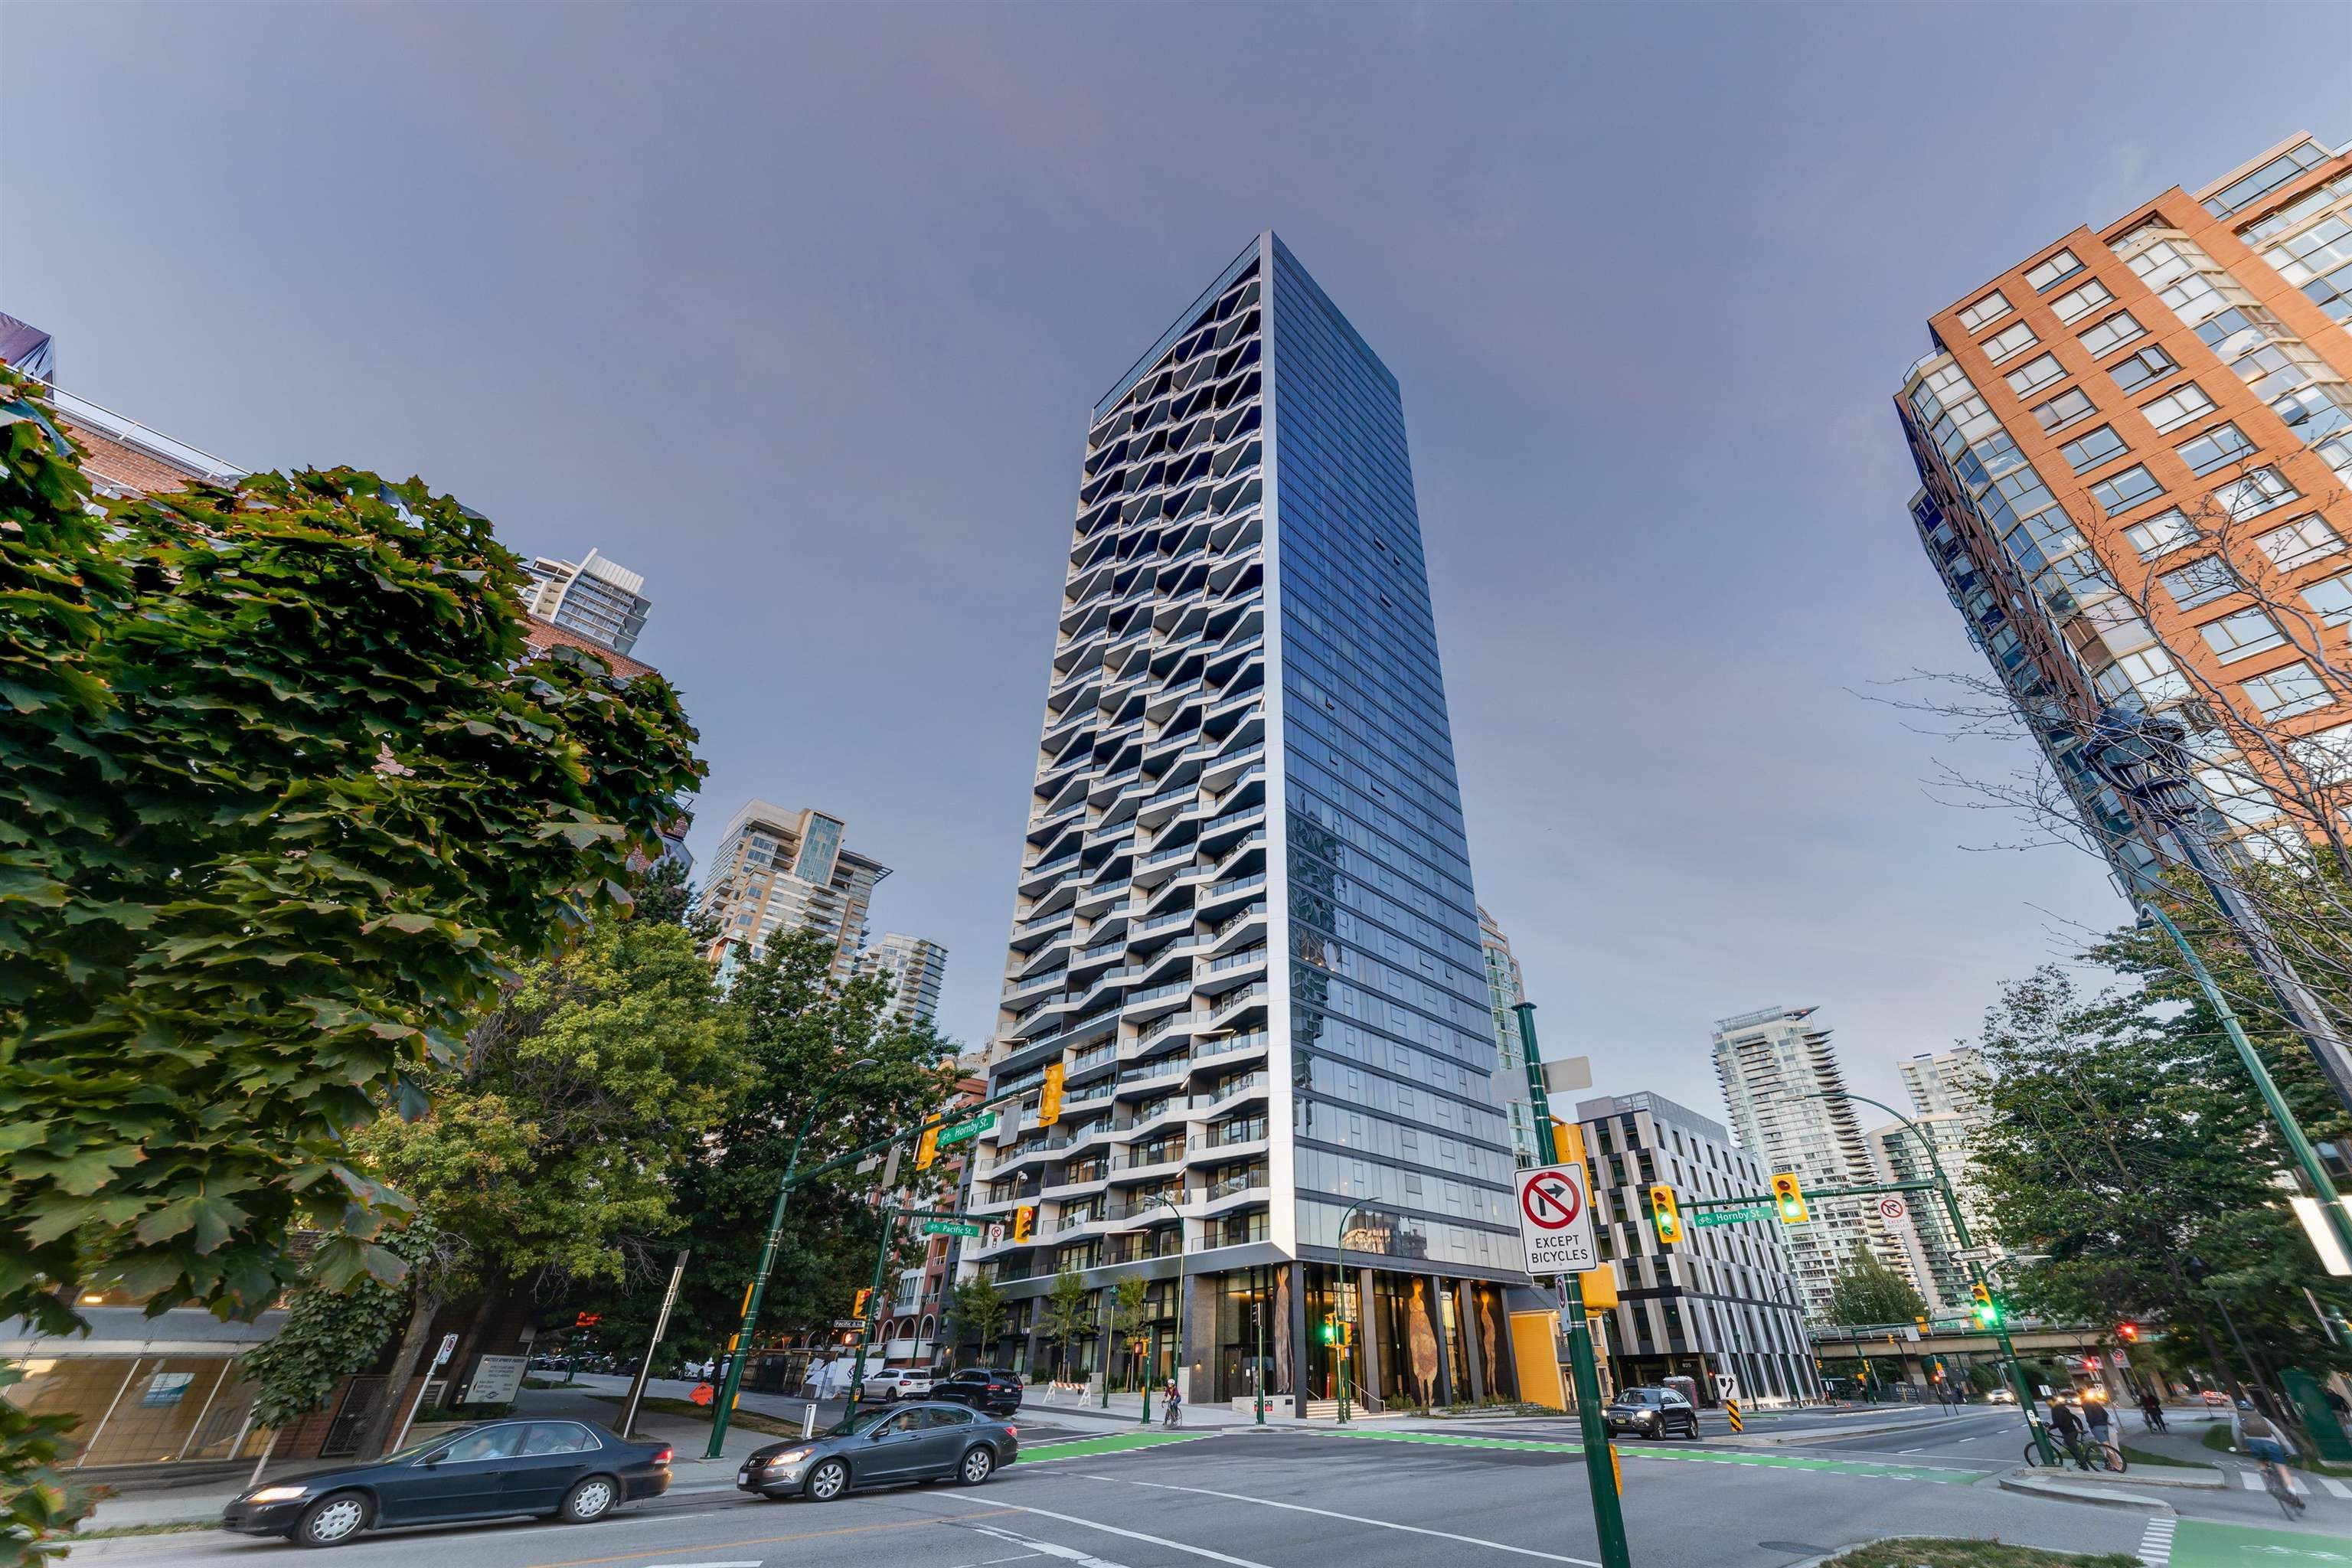 Main Photo: 903 889 PACIFIC STREET in Vancouver: Downtown VW Condo for sale (Vancouver West)  : MLS®# R2614072